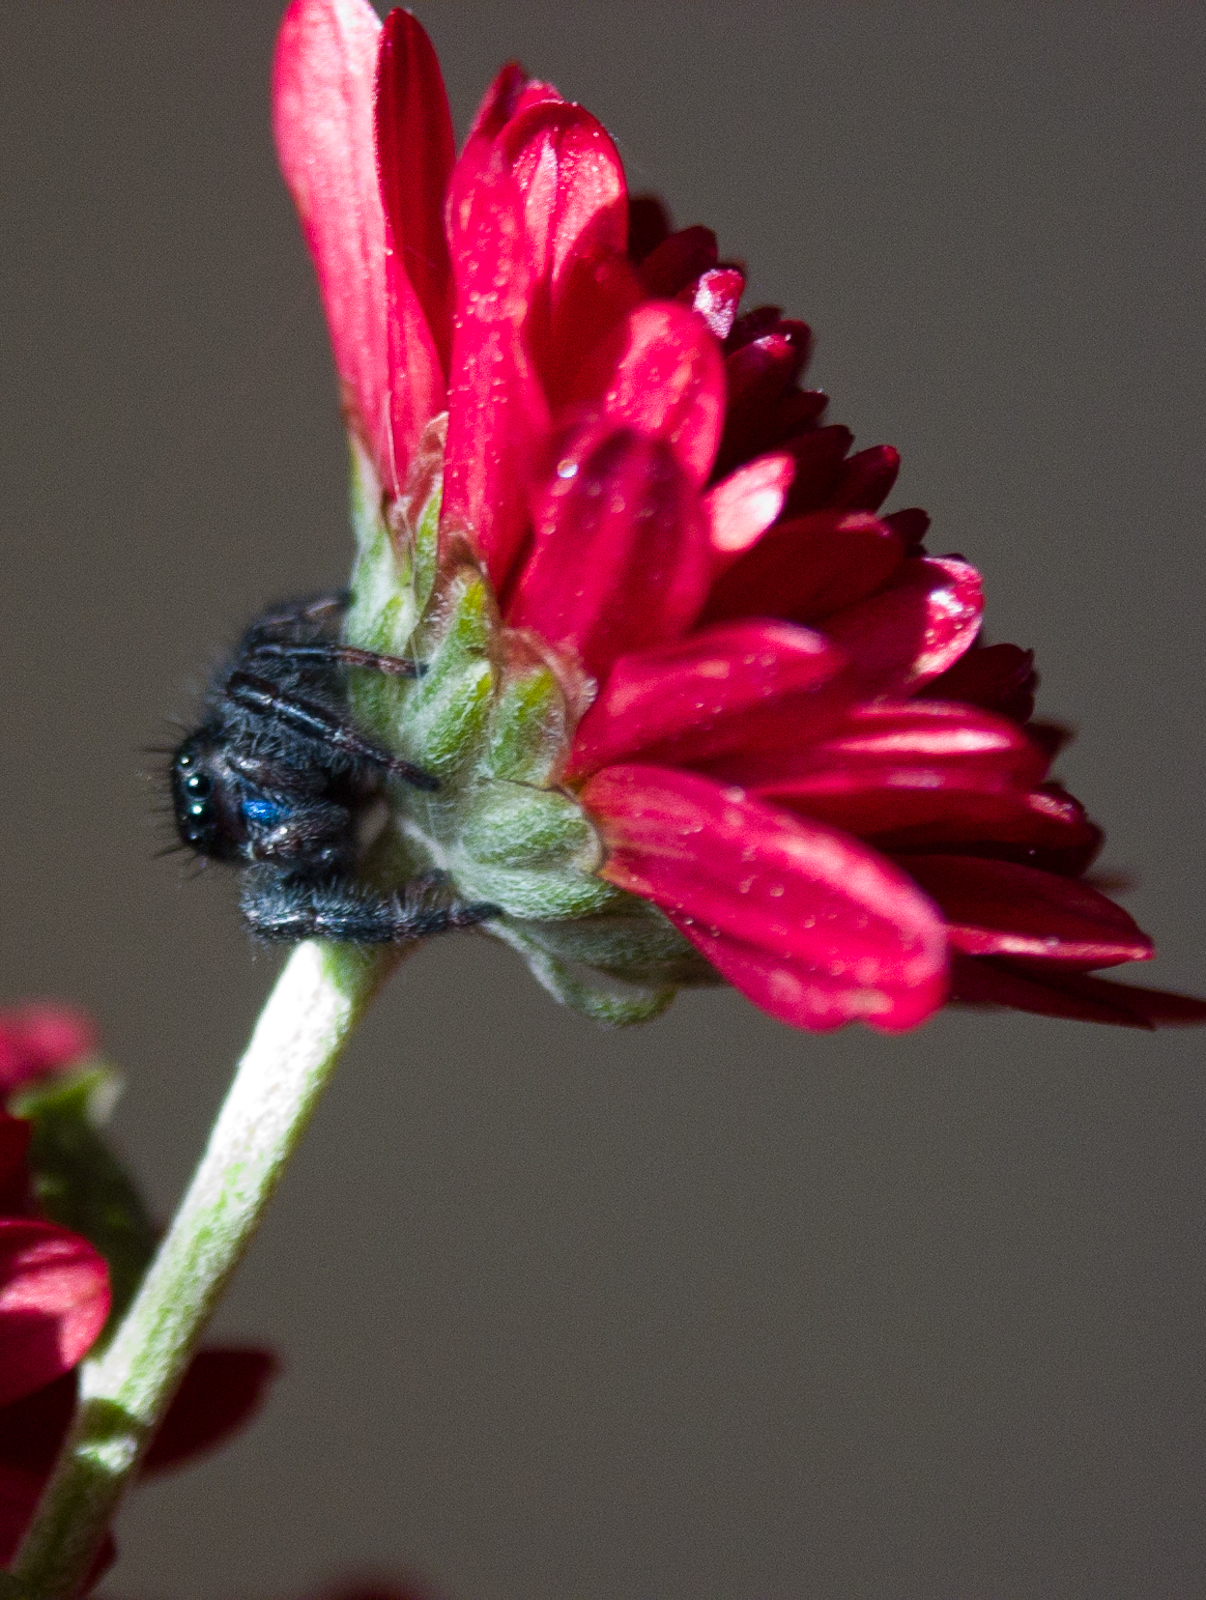 Black jumping spider with red dot - photo#48